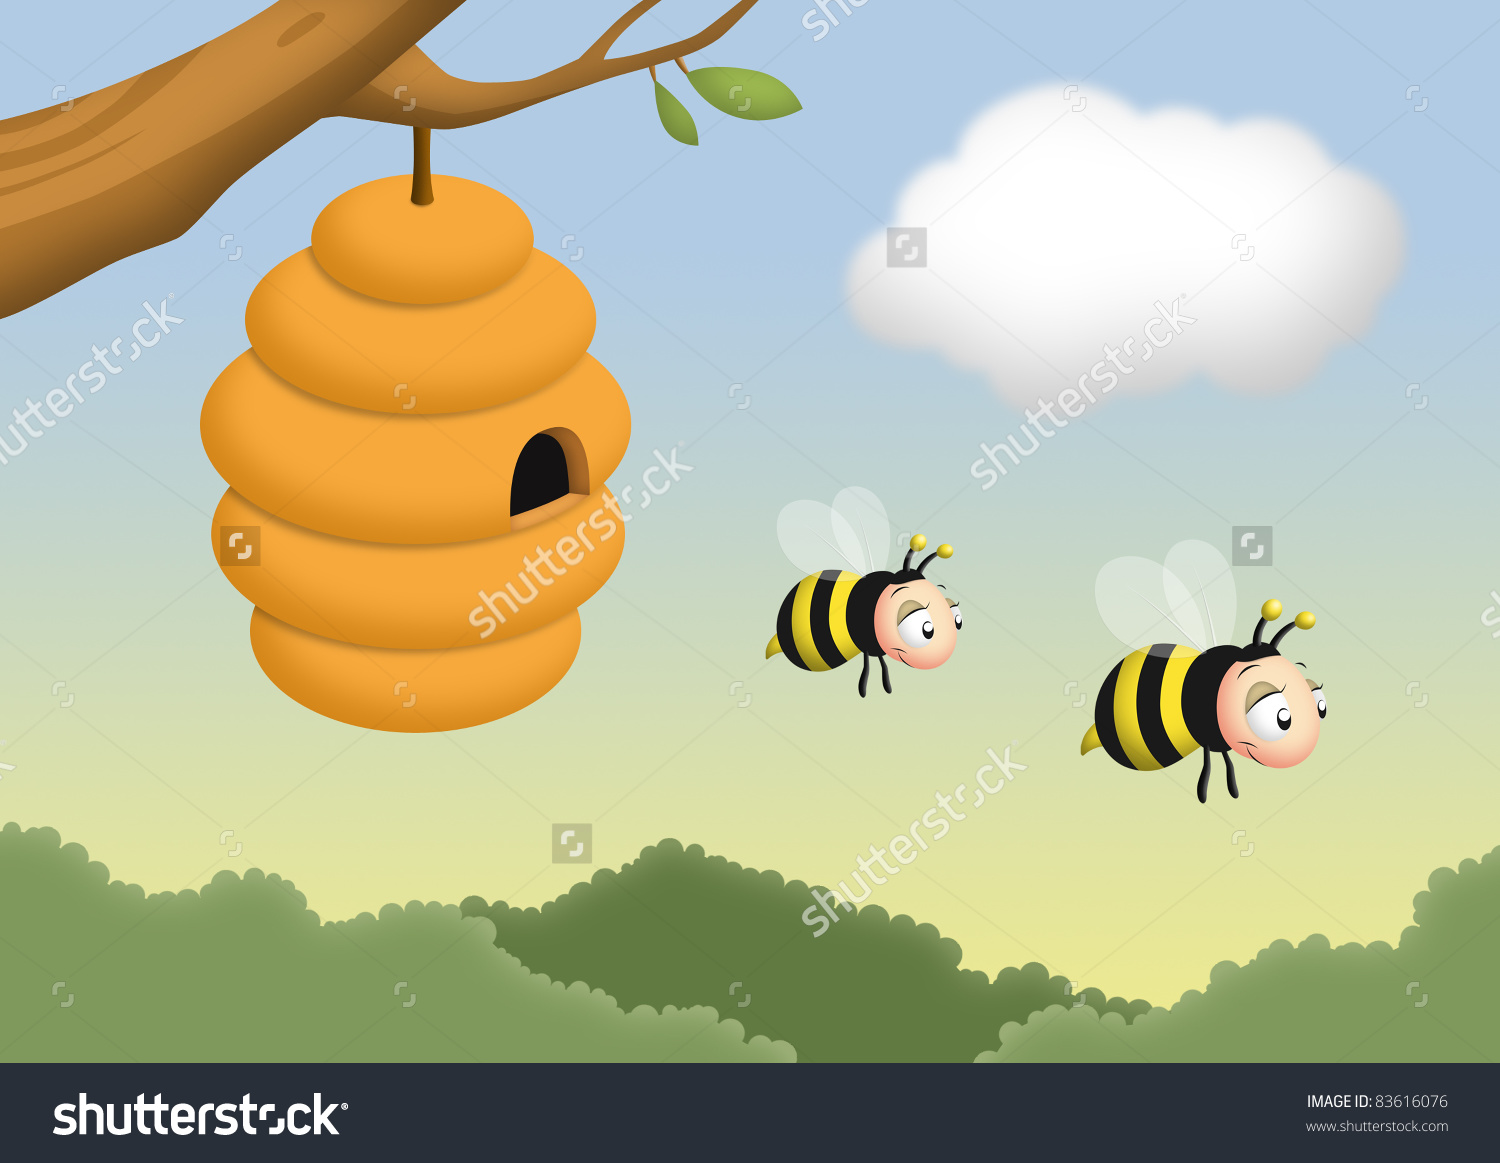 Beehive from tree clipart png freeuse stock Beehive on a tree clipart - ClipartFox png freeuse stock